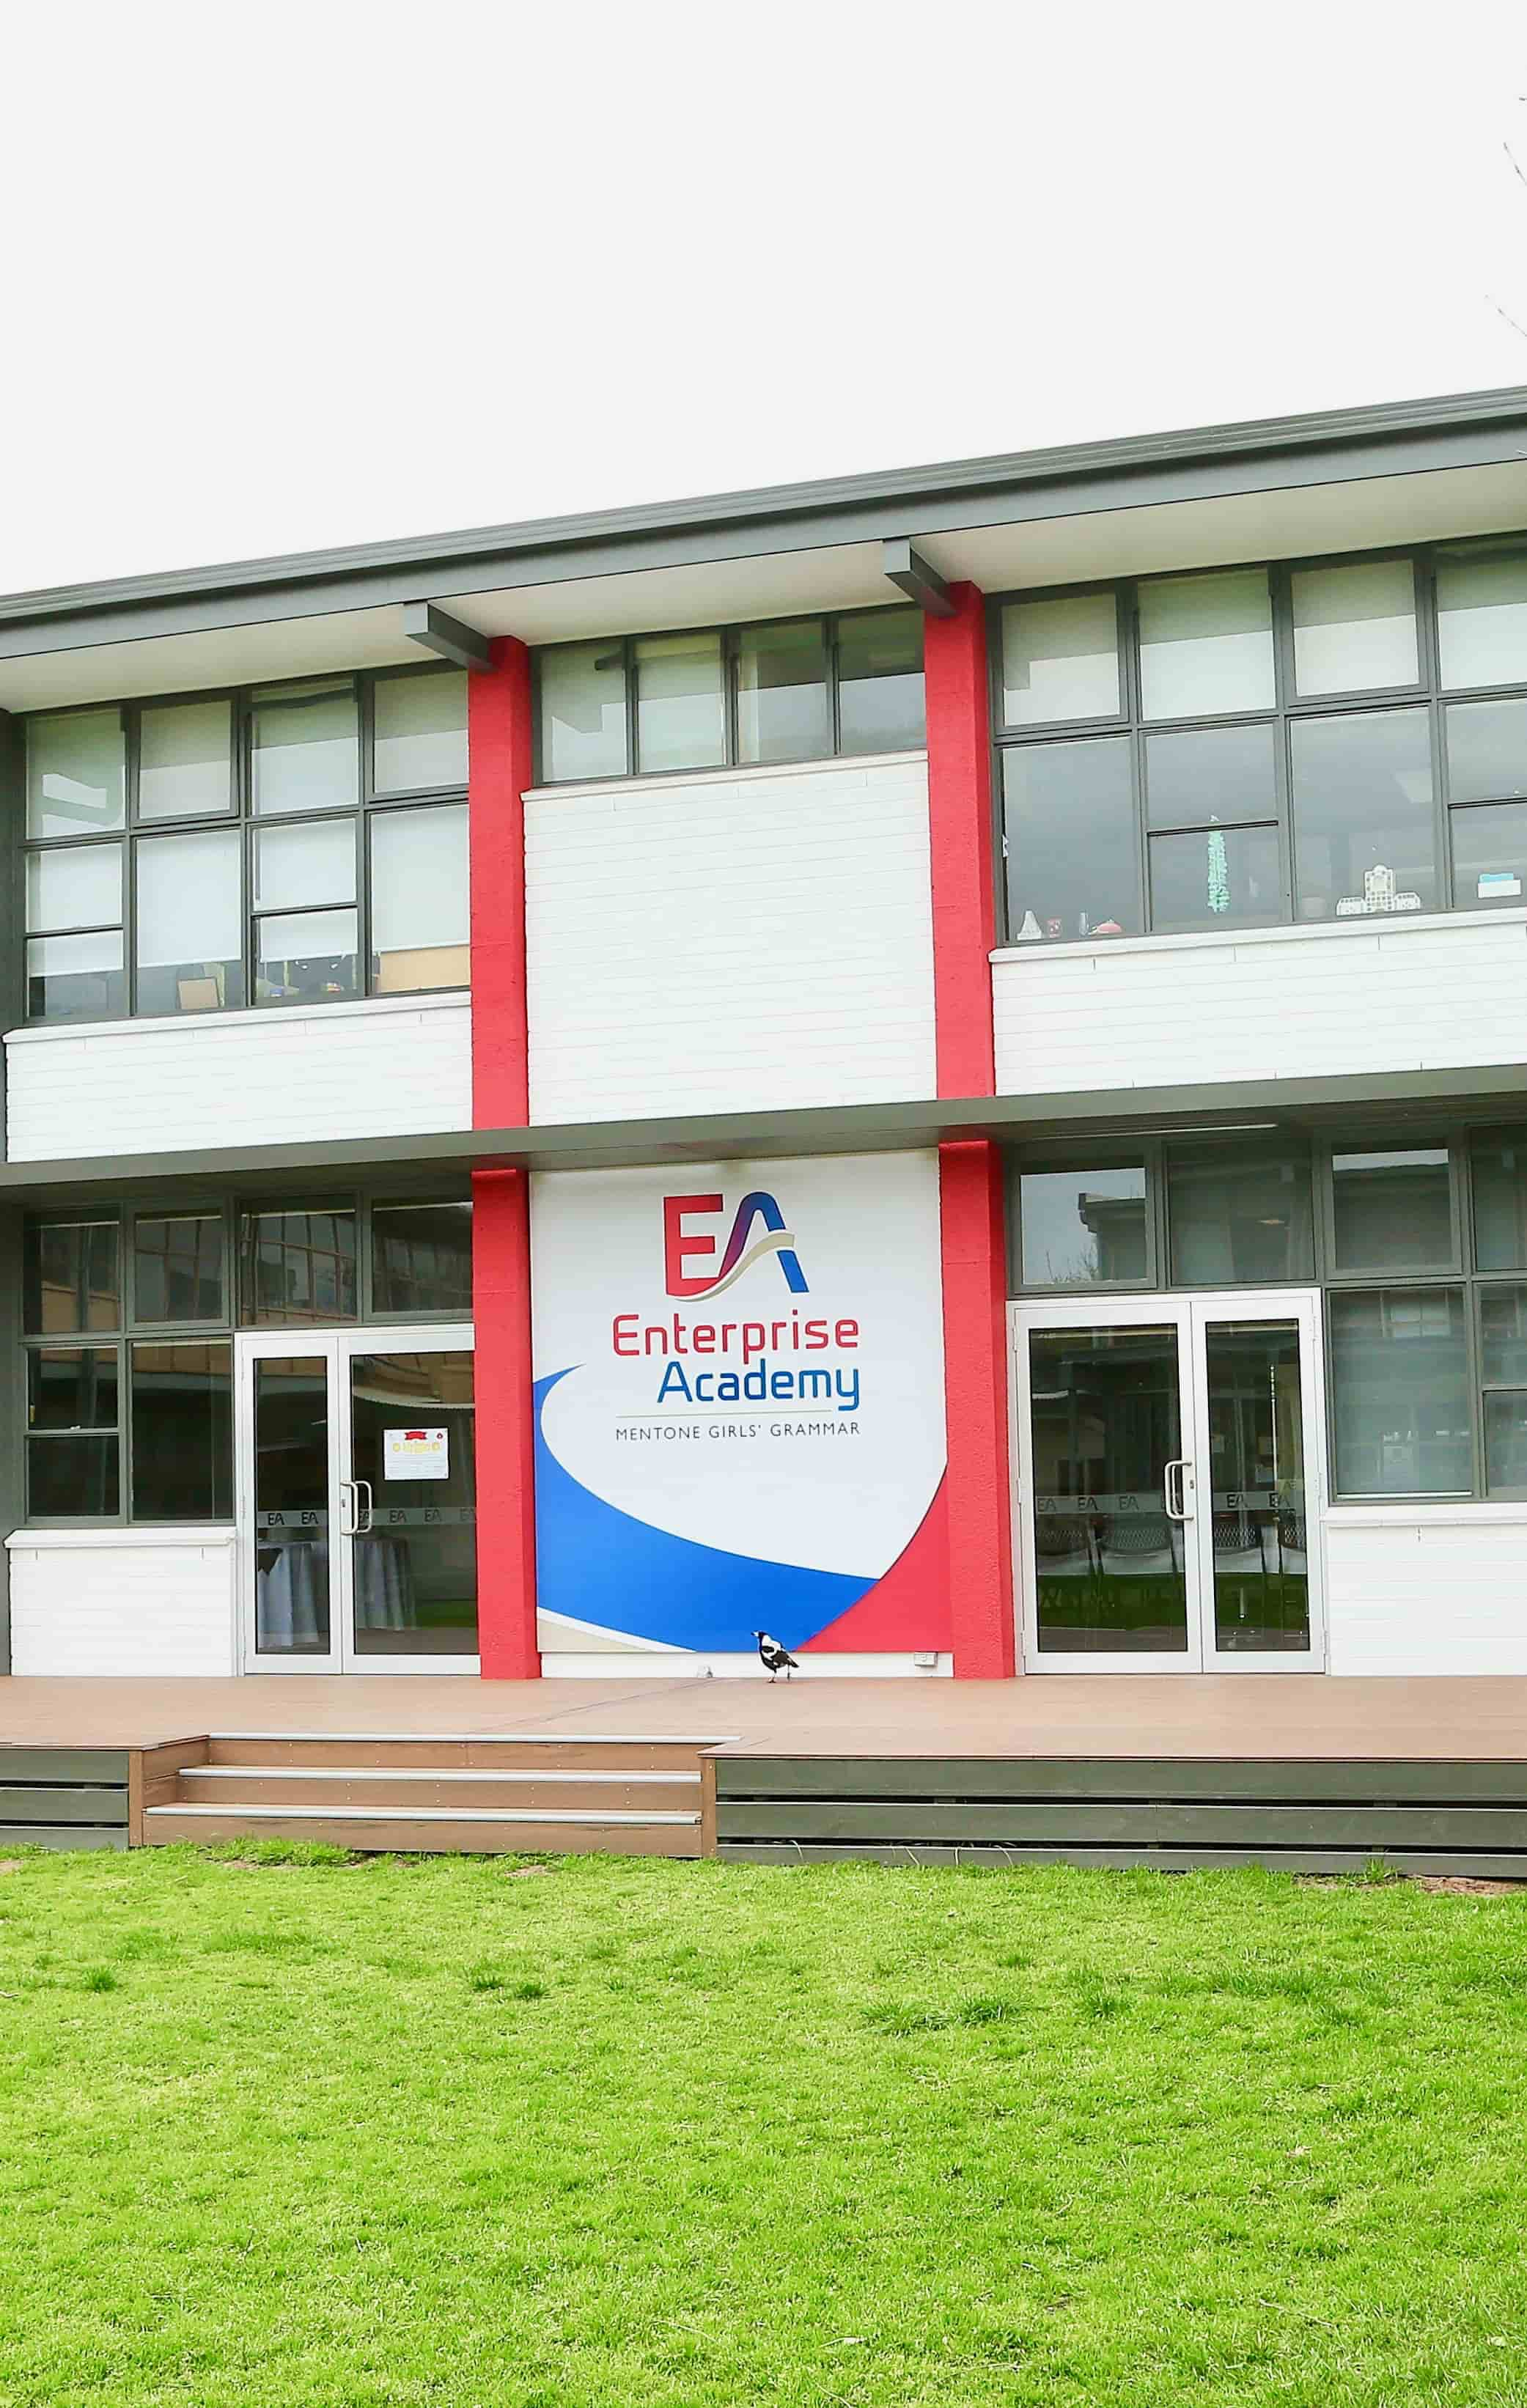 enterprise academy sign